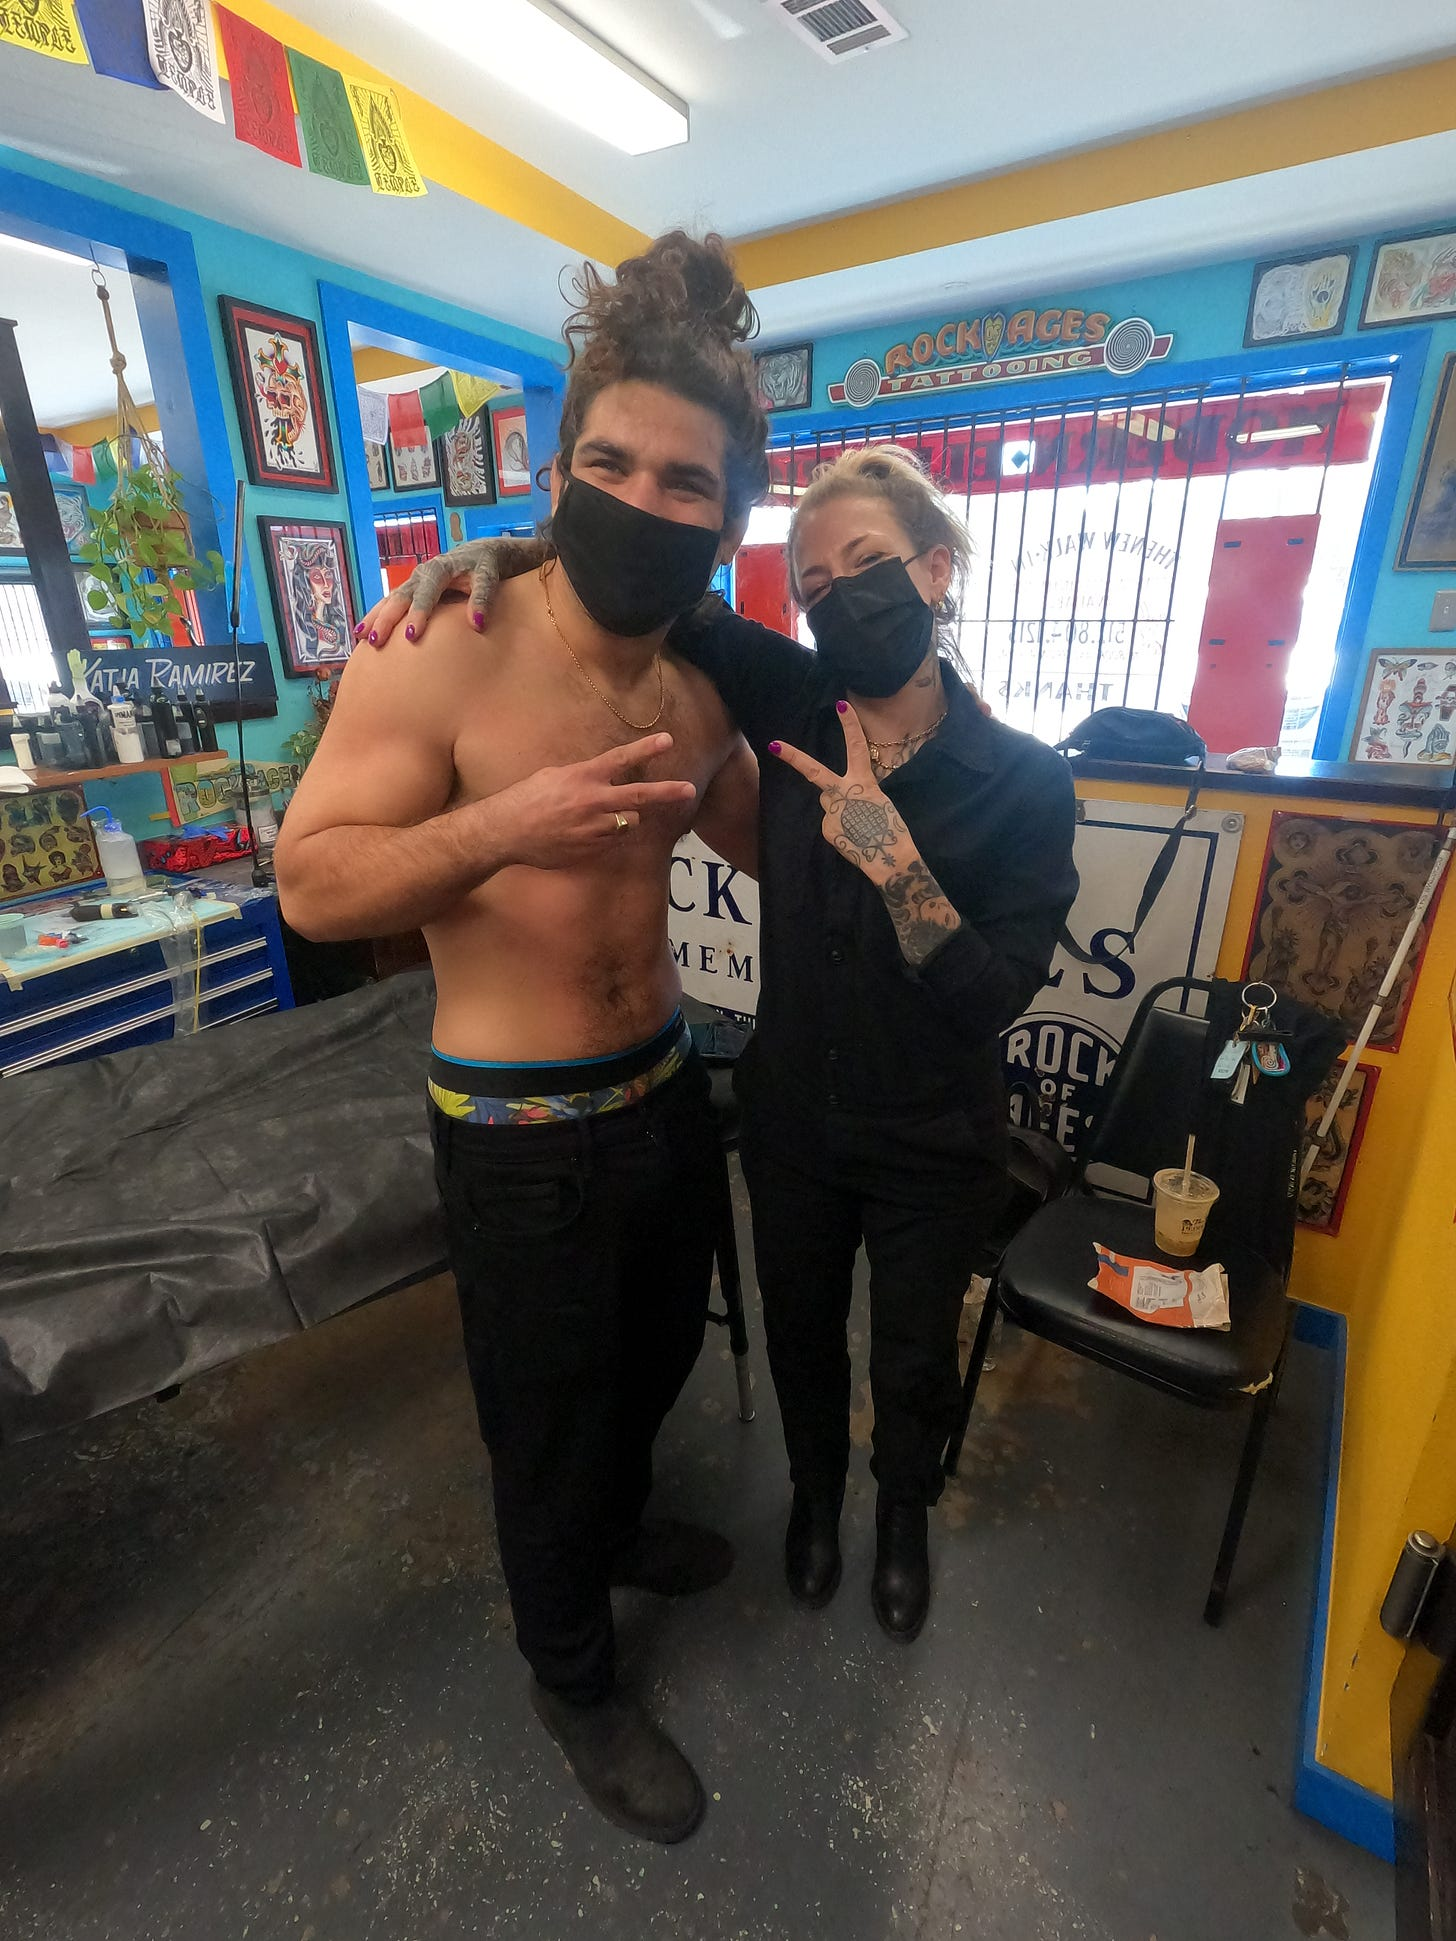 anthony and the tattoo artist hold up peace signs with their hands. Anthony is smiling and has no shirt on